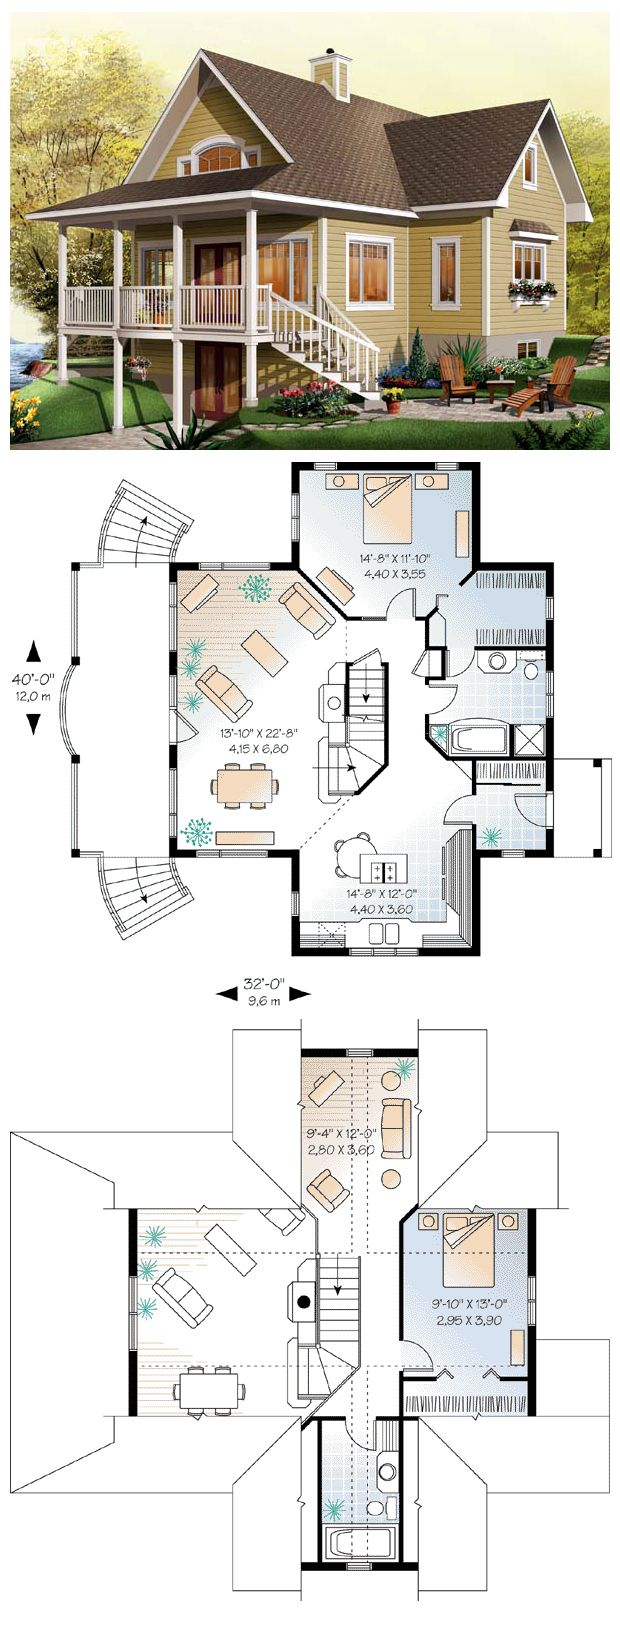 House Plan W3938 V2 Detail From Drummondhouseplans Com: The Open Kitchen Includes A